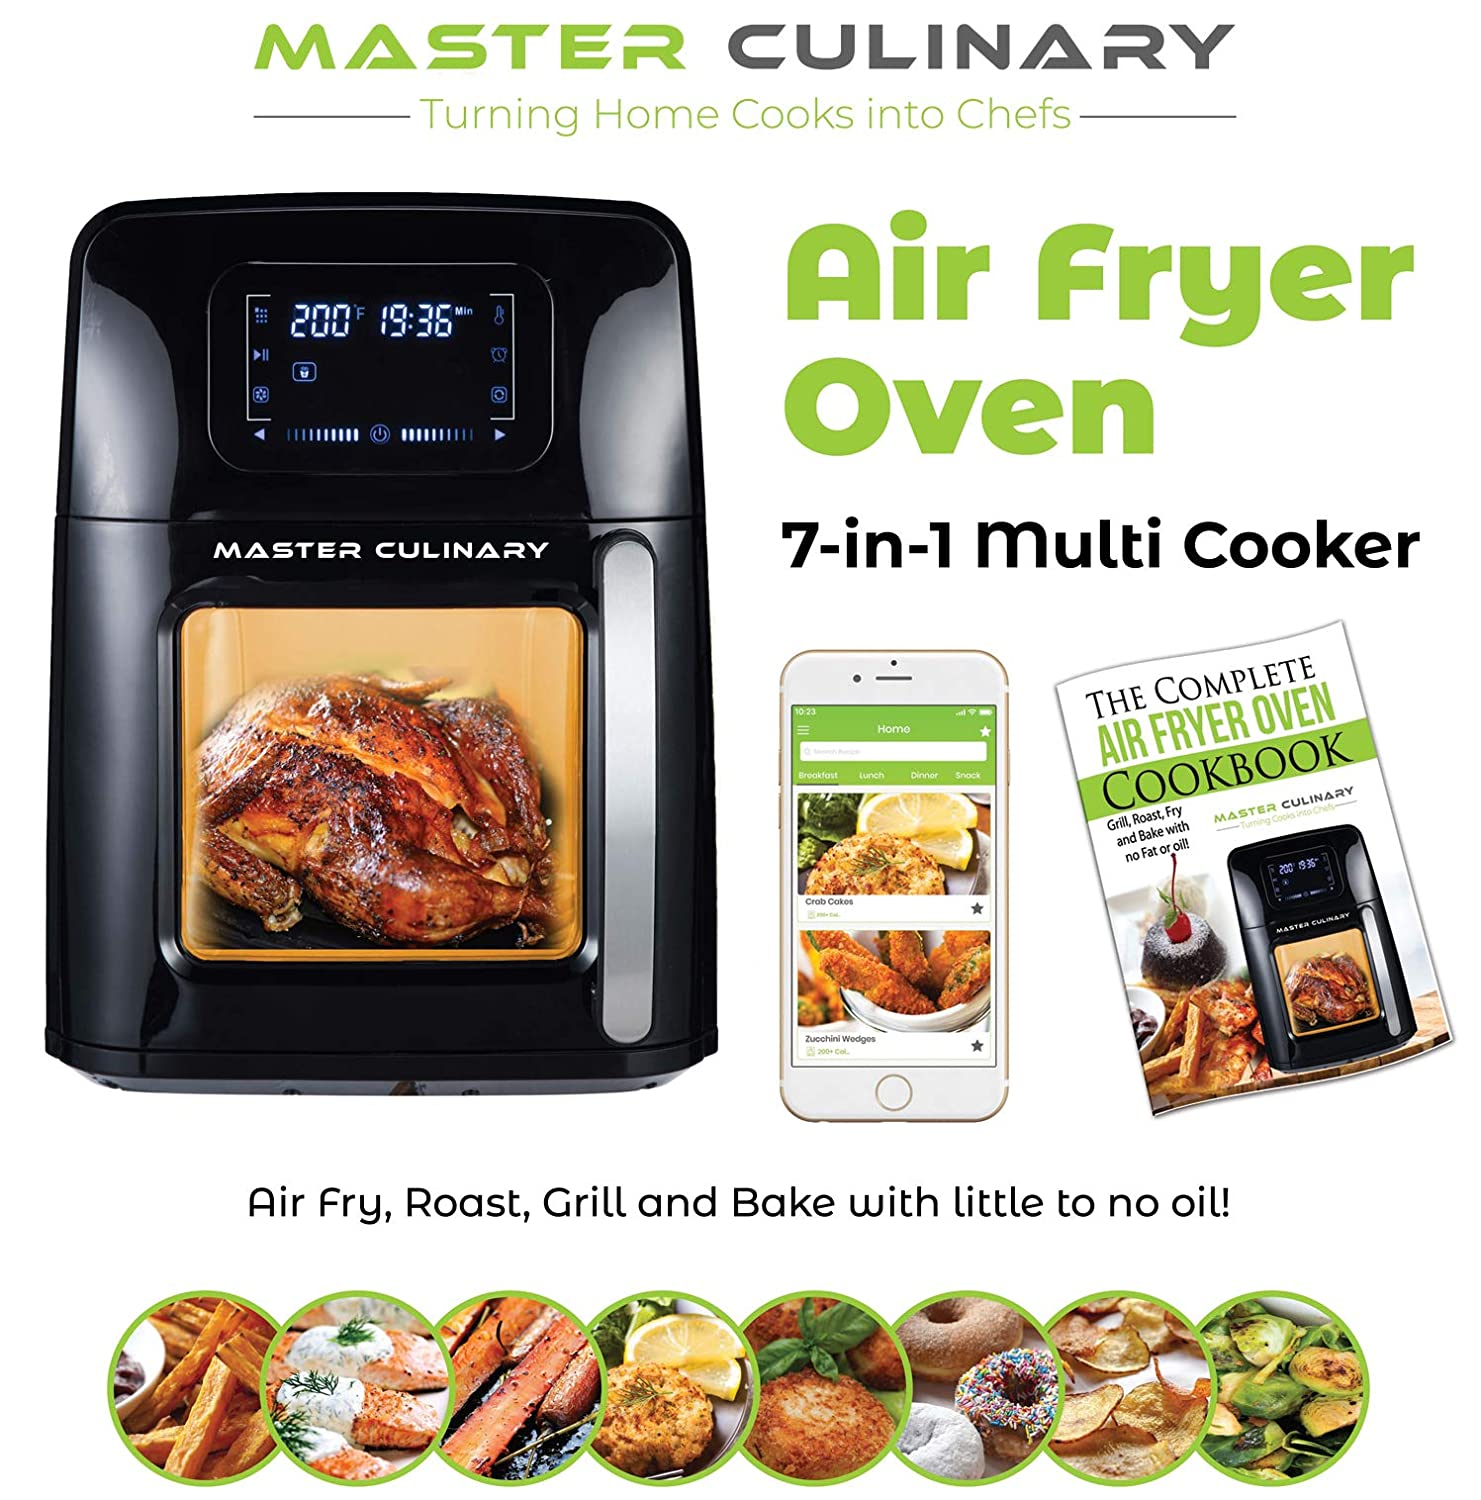 Master Culinary Air Fryer Oven 12 QT XL Family Size 7 in 1 Multi Cooker FDA Approved Free Mobile App and Recipe Book Included Rapid Air Technology Ultra Quiet 2019 Model